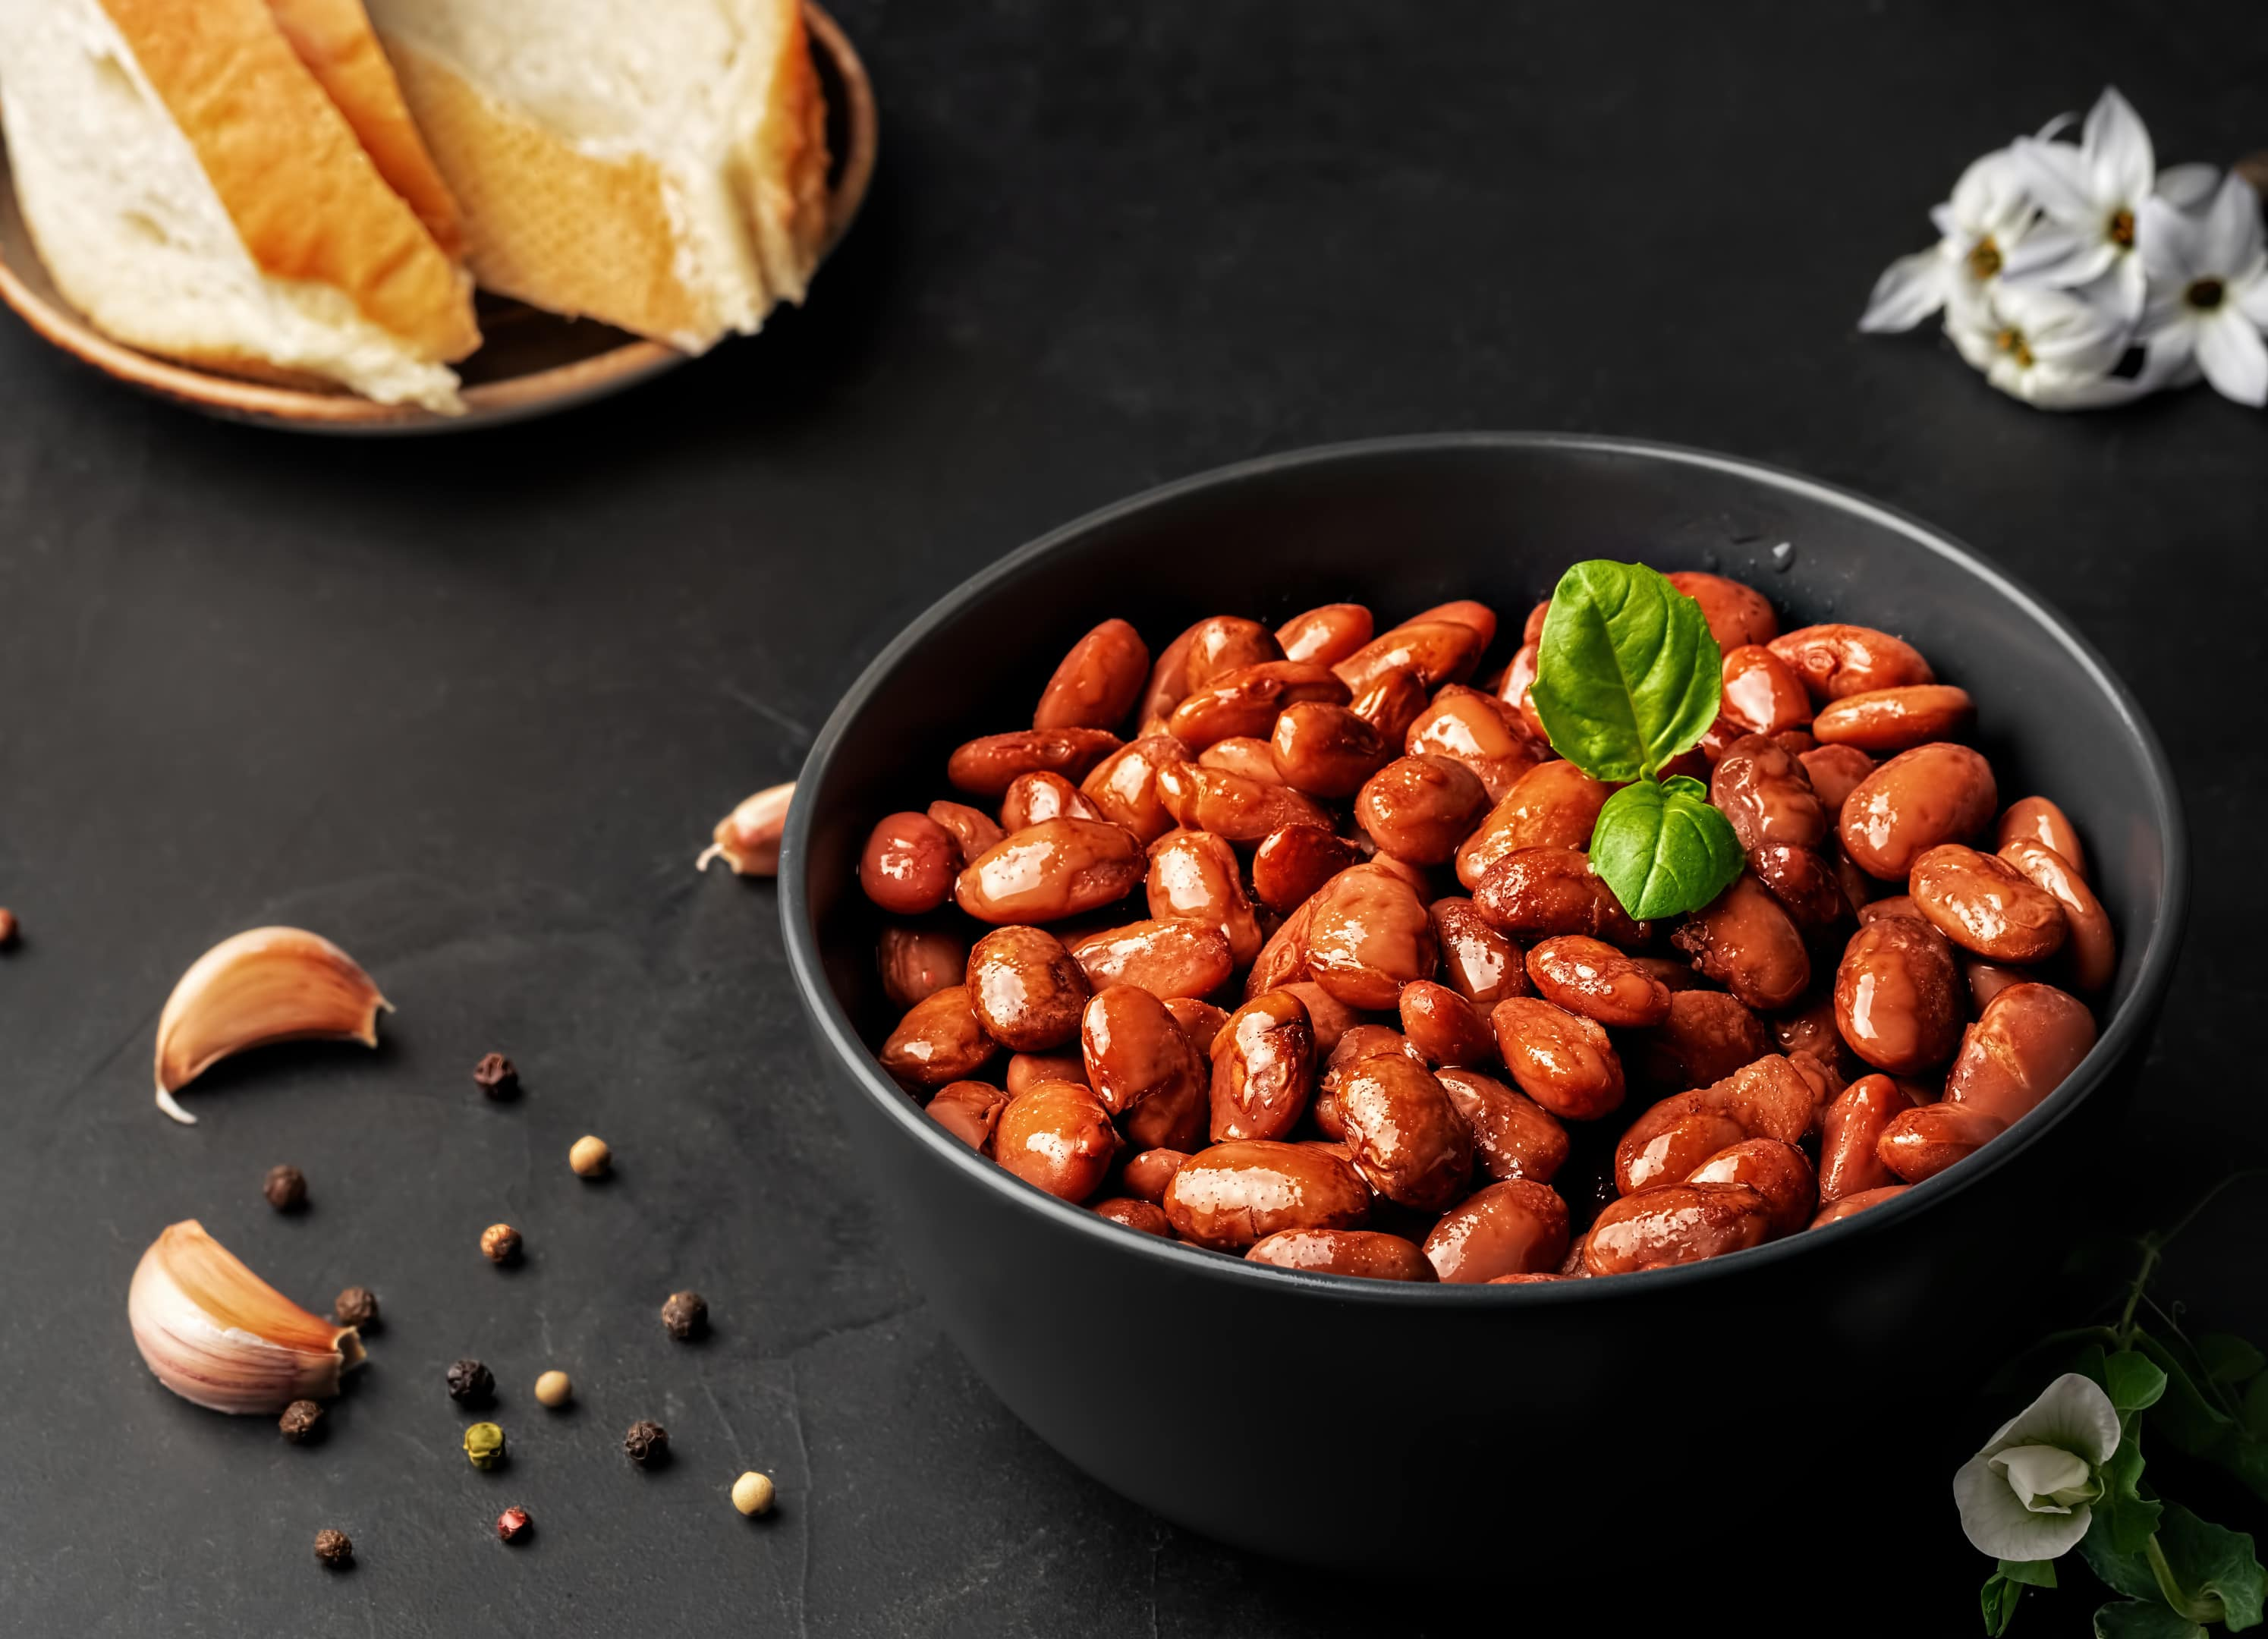 Boiled red beans with basil leaves